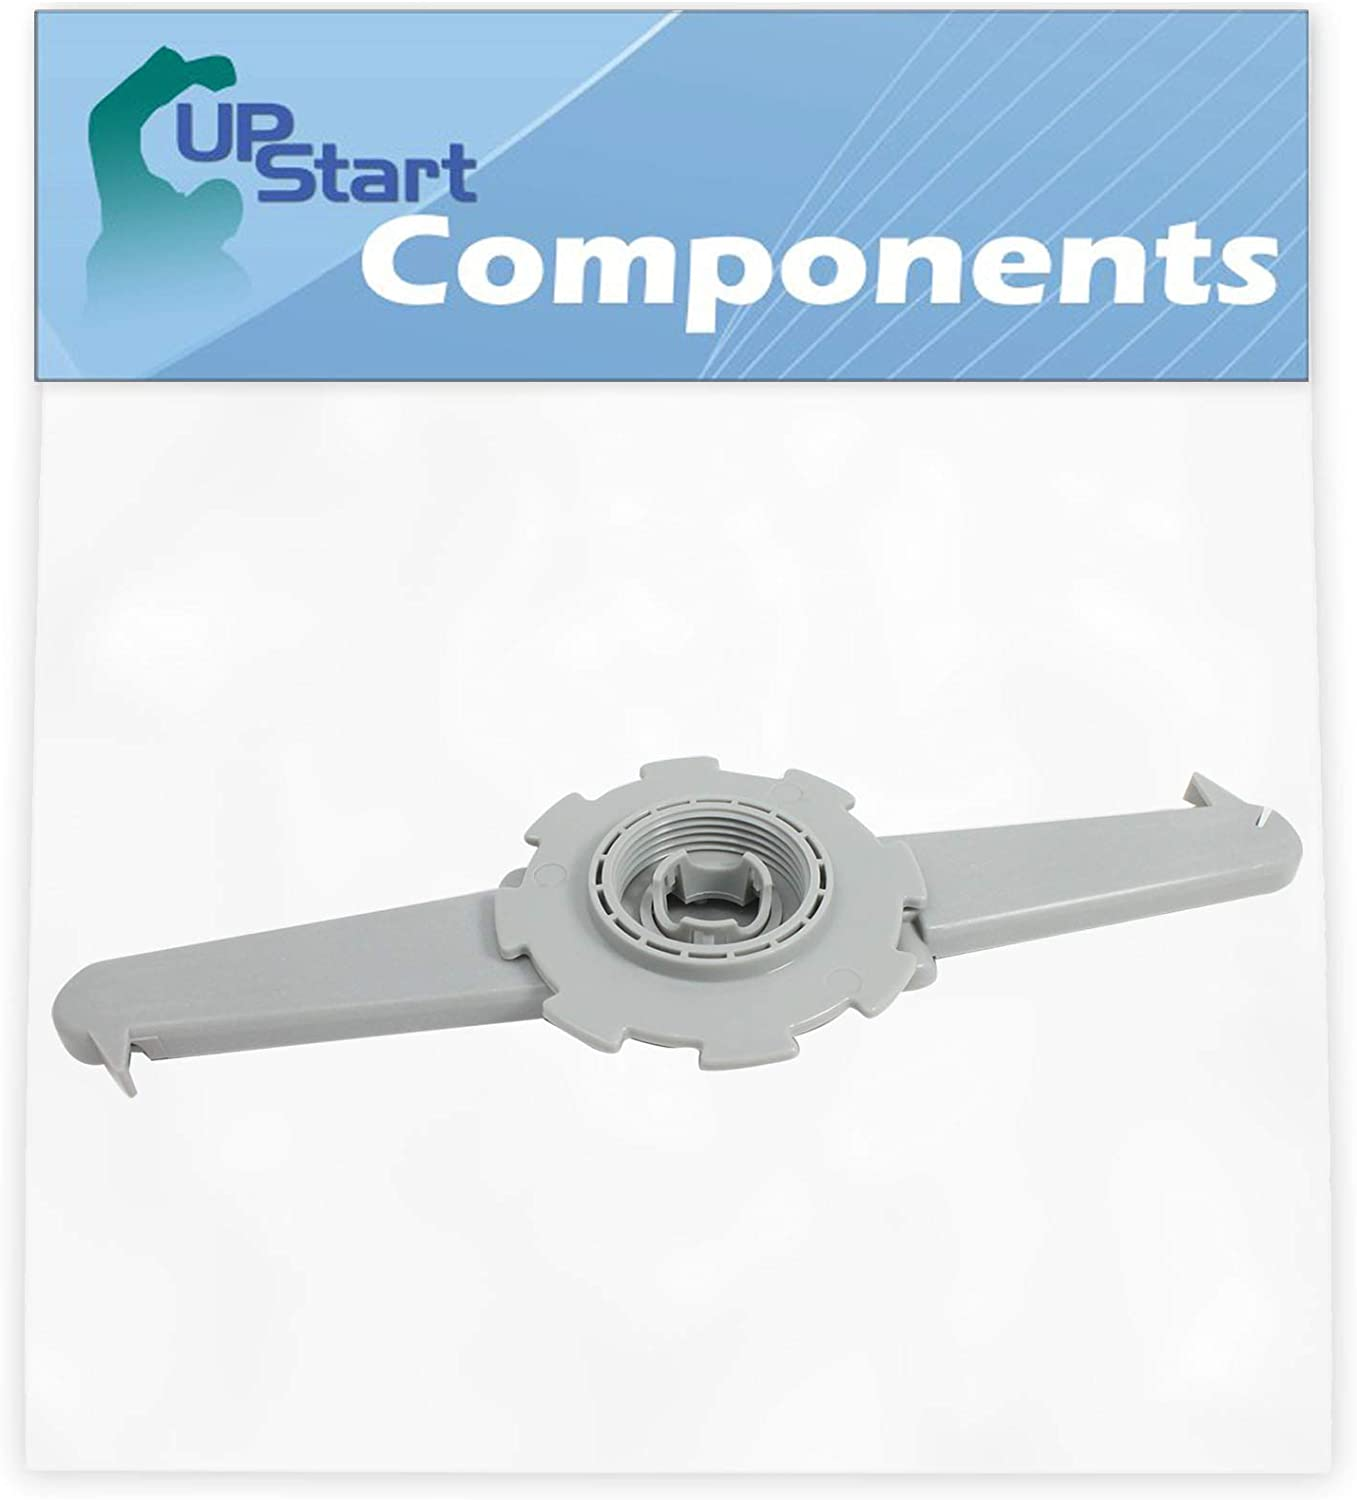 5304506516 Dishwasher Upper Spray Arm Replacement for Frigidaire FFID2423RS4B Dishwasher - Compatible with 5304506516 Upper Wash Arm Spinner